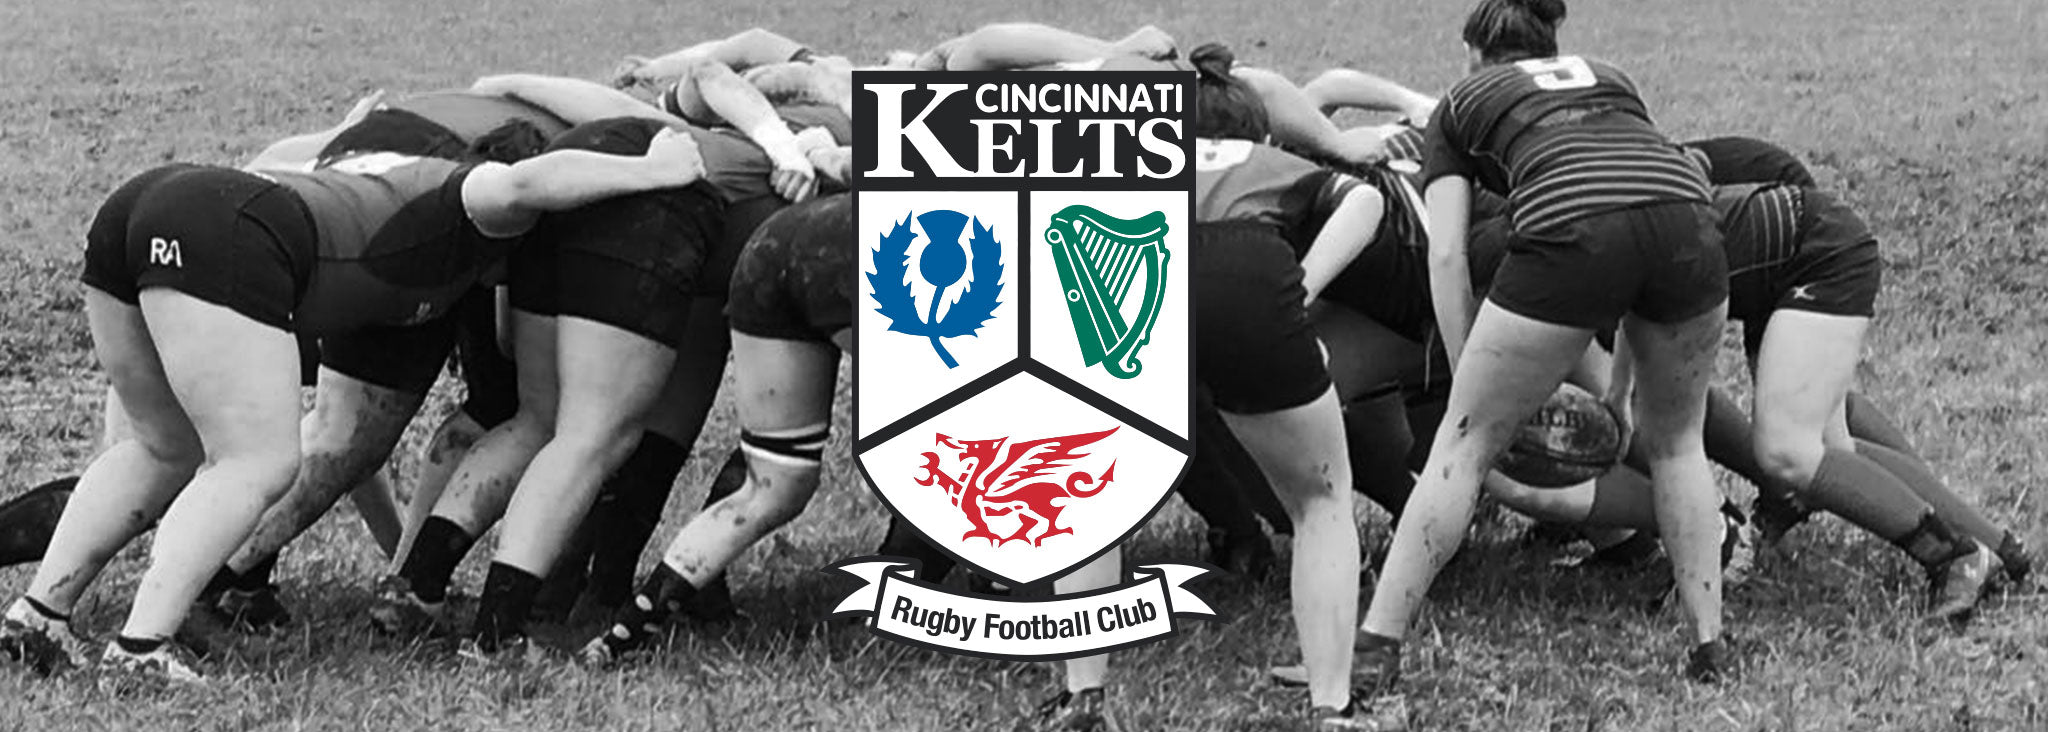 Cincinnati Kelts RFC